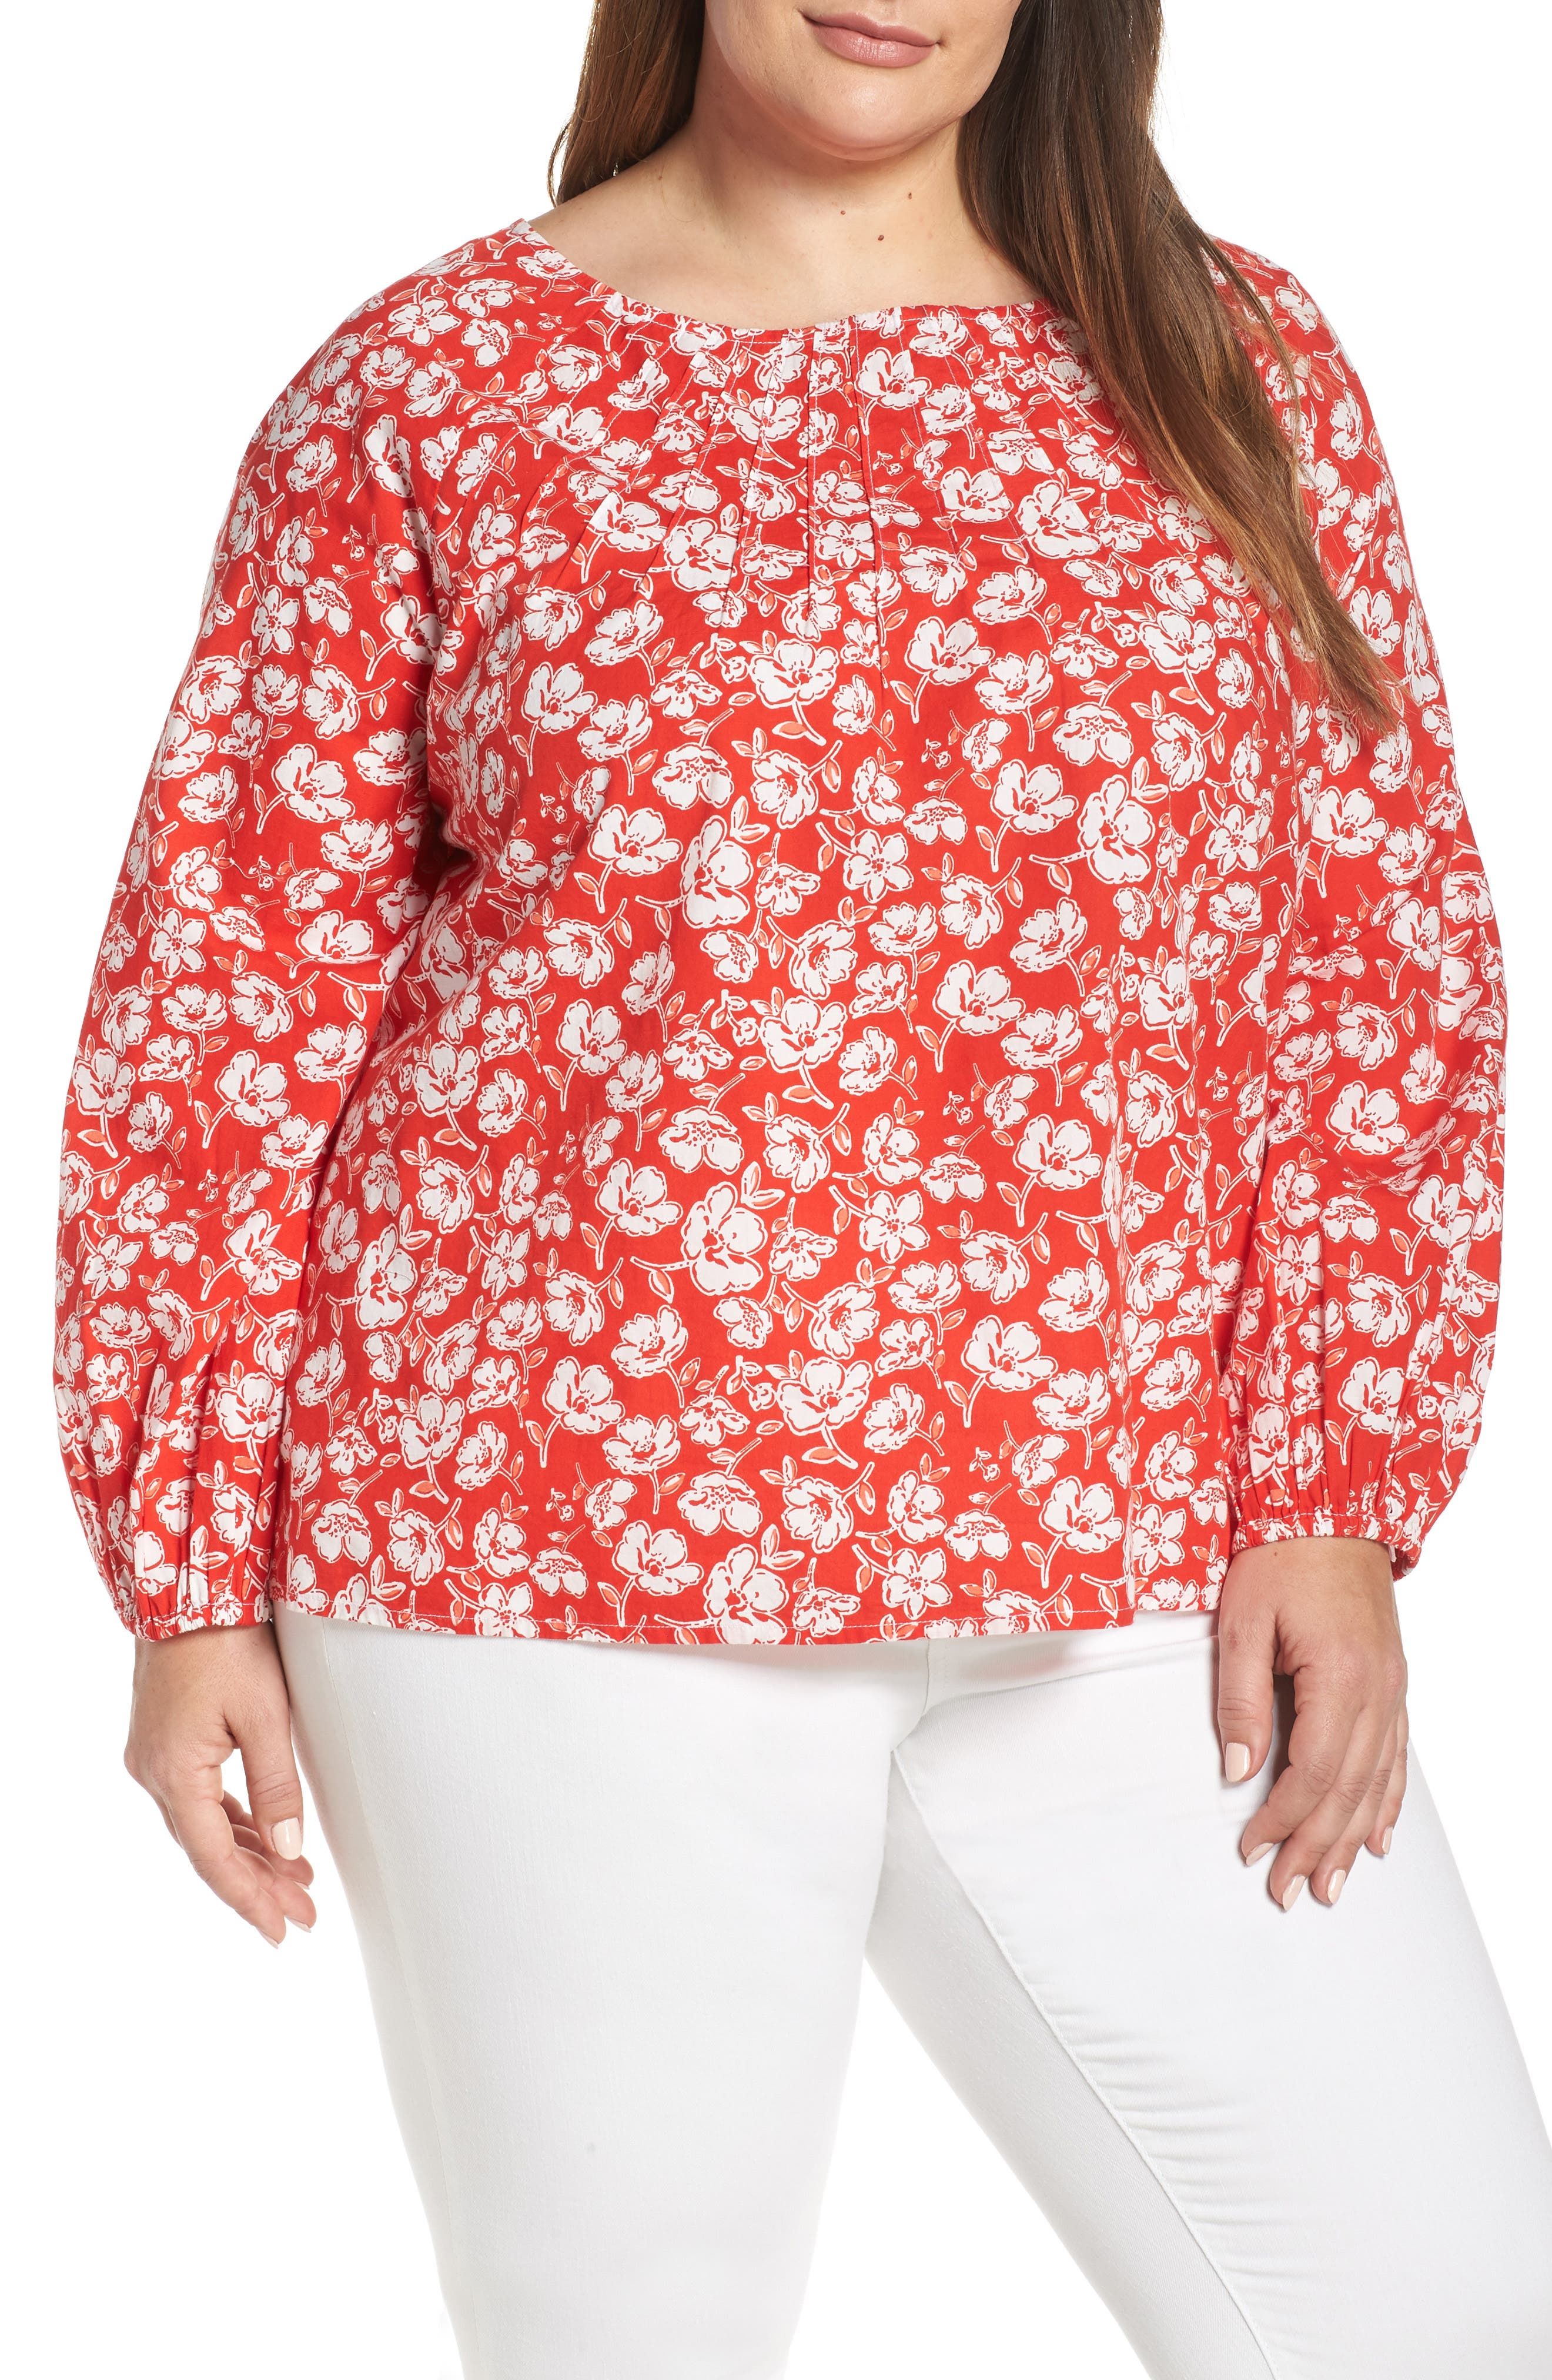 CASLON<SUP>®</SUP>, Floral Print Pintuck Pleat Top, Main thumbnail 1, color, RED SCARLET FLORAL